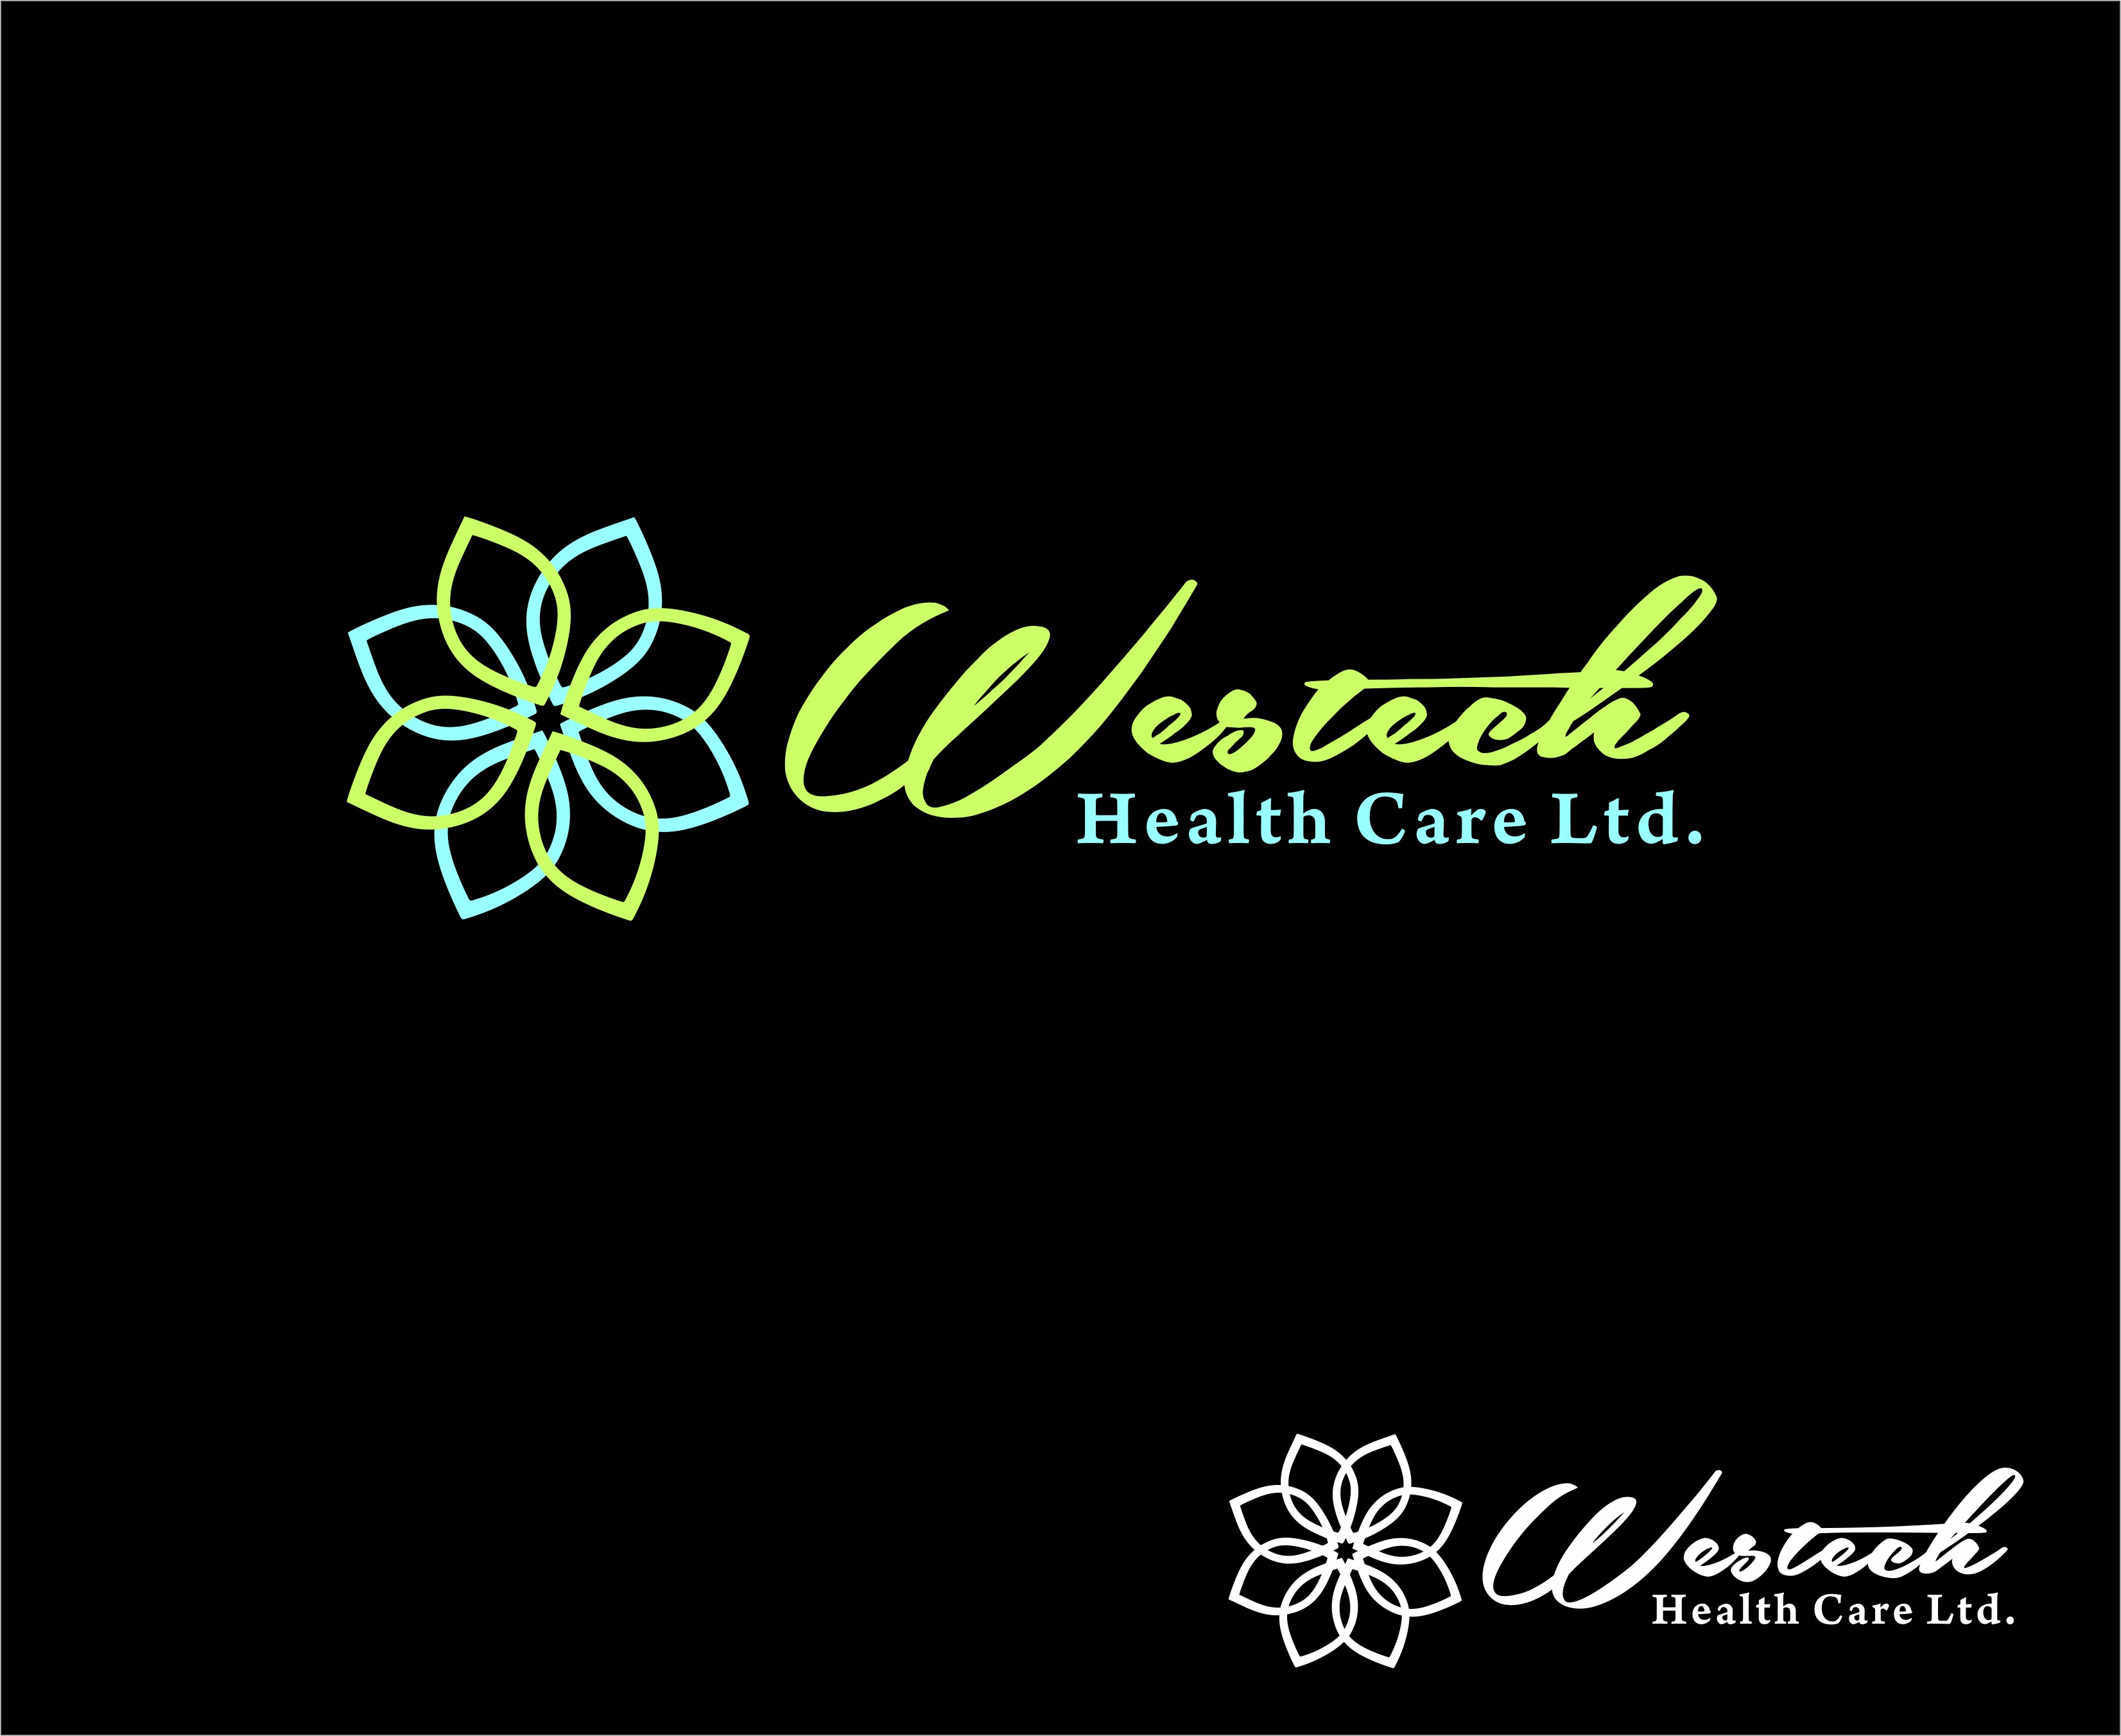 Logo Design by Mhon_Rose - Entry No. 28 in the Logo Design Contest Creative Logo Design for Westech Health Care Ltd..